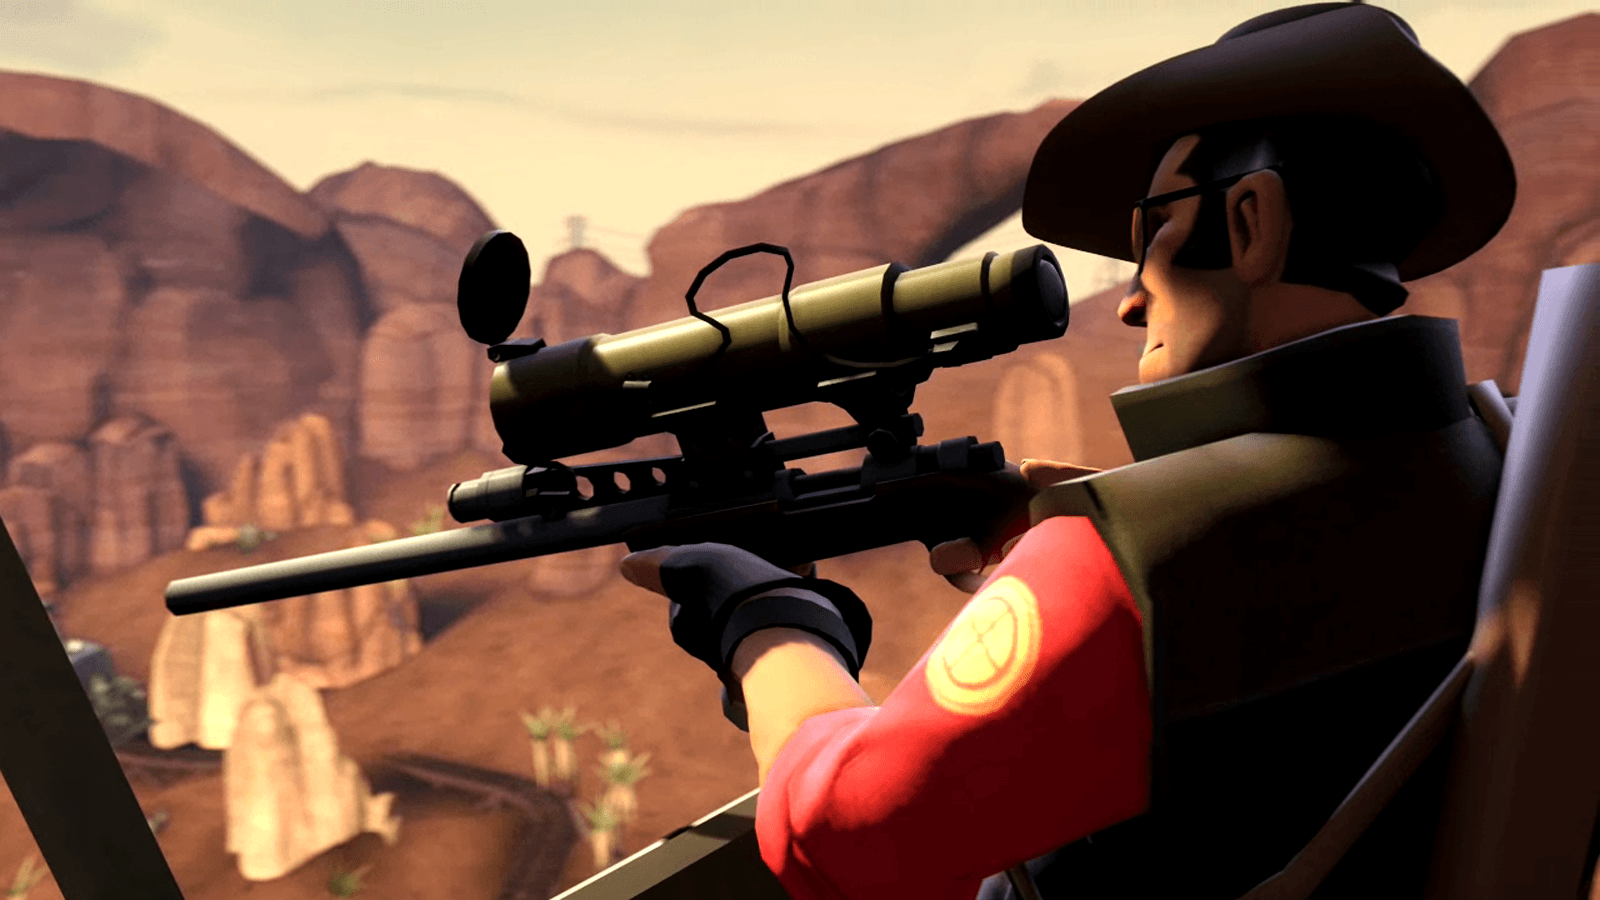 Wallpaper Team Fortress 2